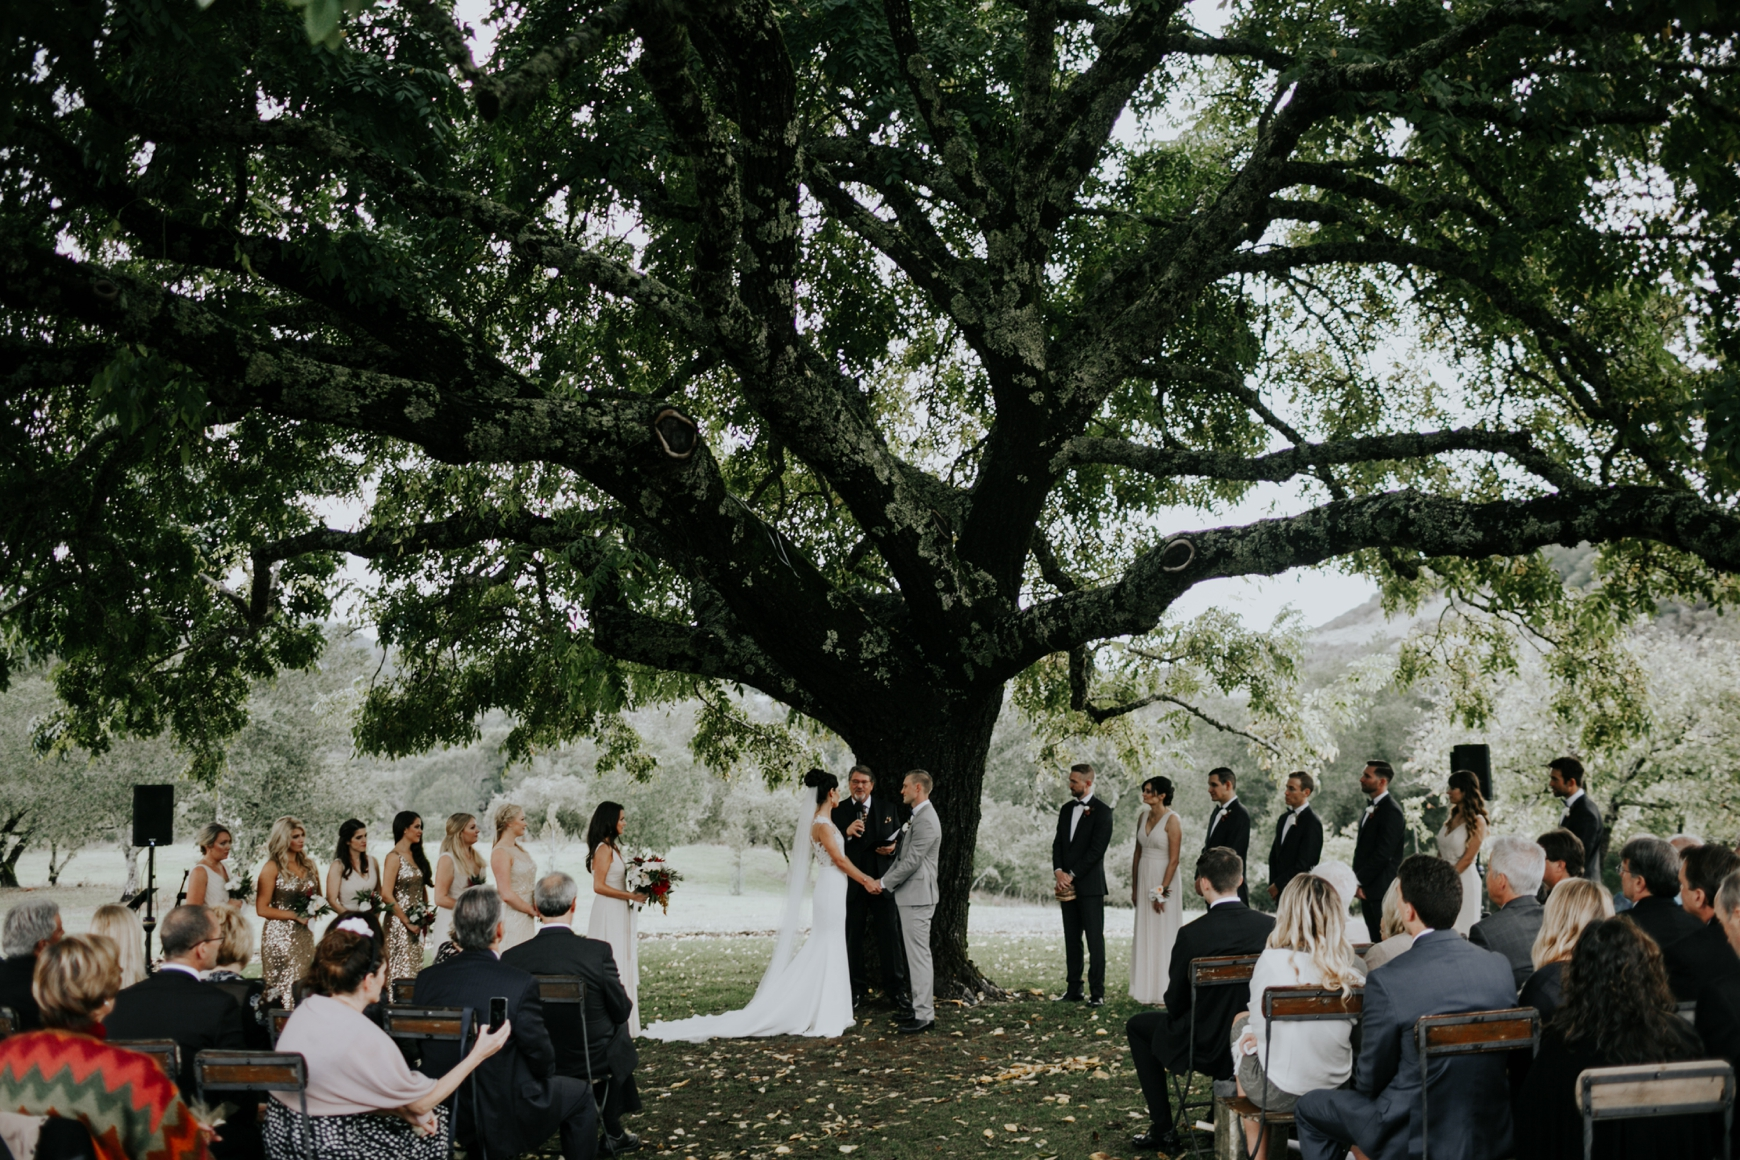 SSS Ranch Wedding Chiara & Jacques Emily Magers Photography-708.jpg